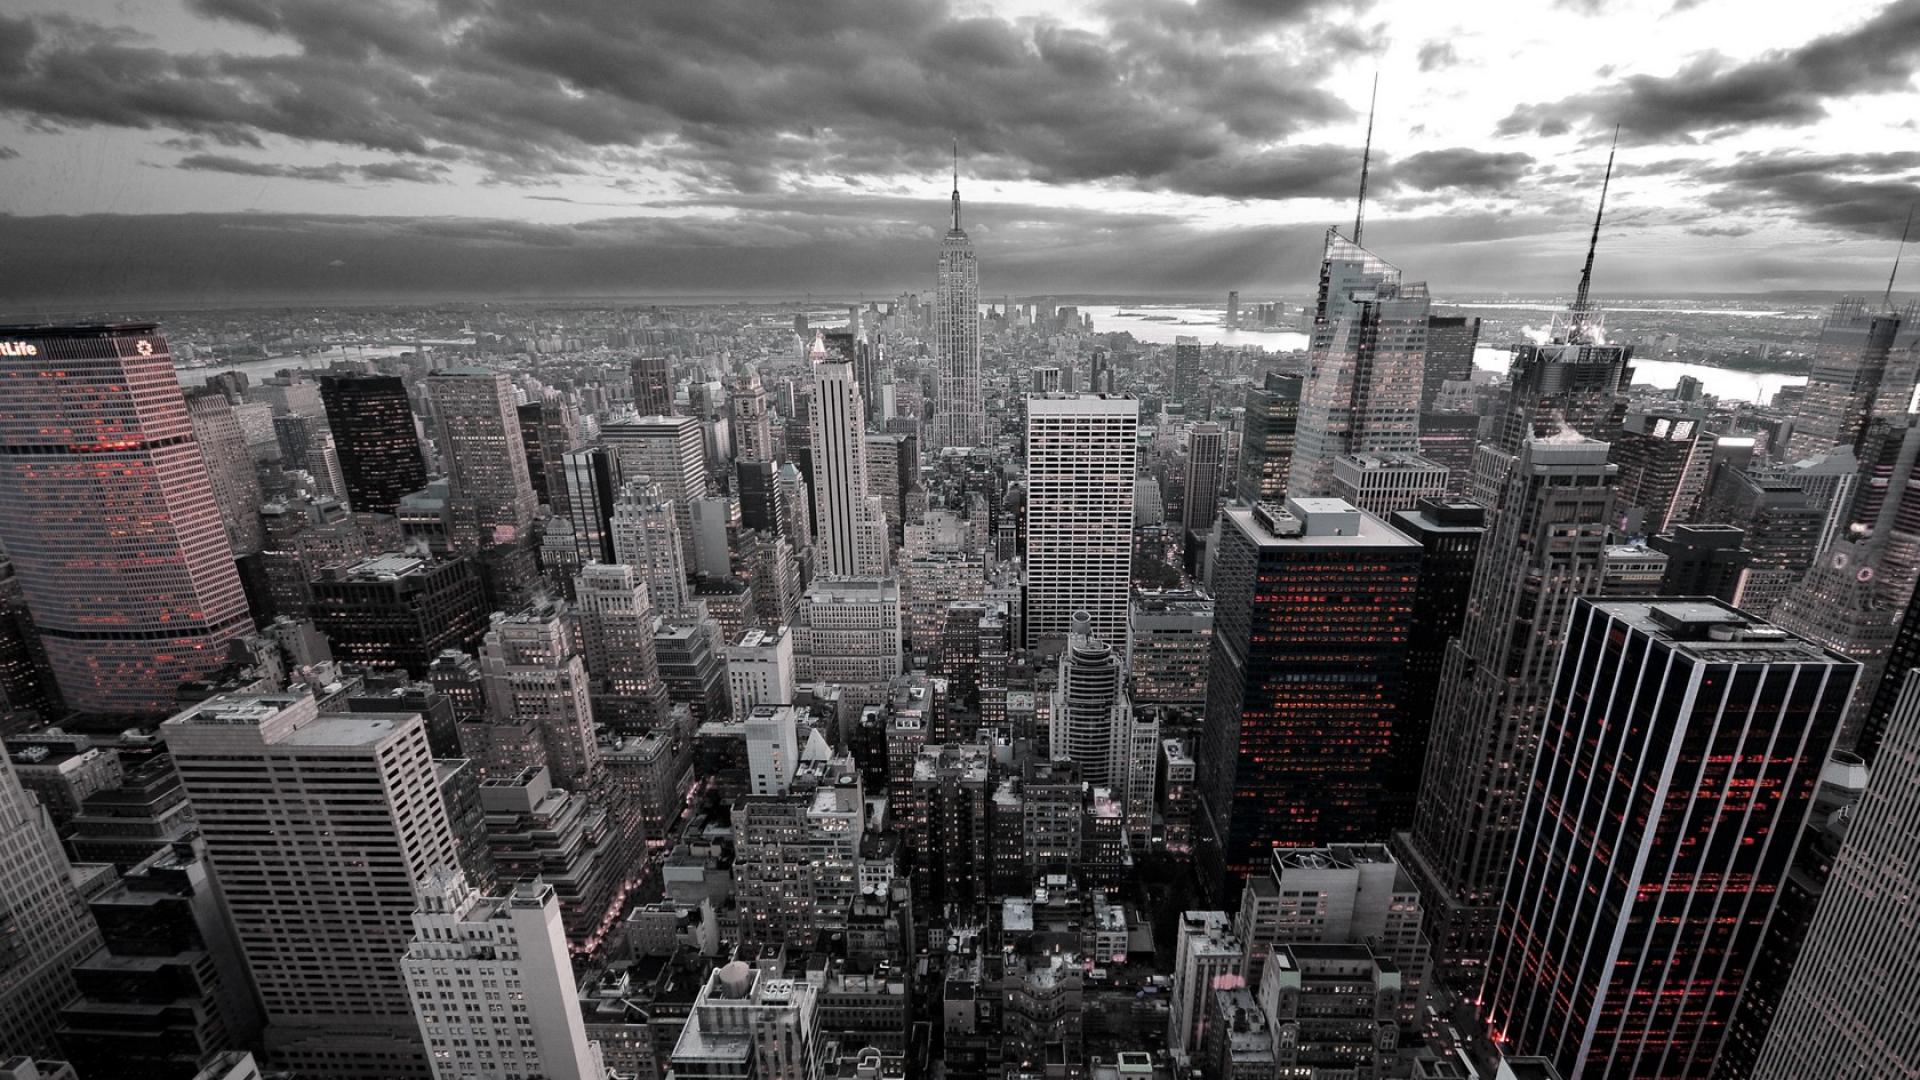 New York City Black and White HD Wallpaper of City   hdwallpaper2013 1920x1080